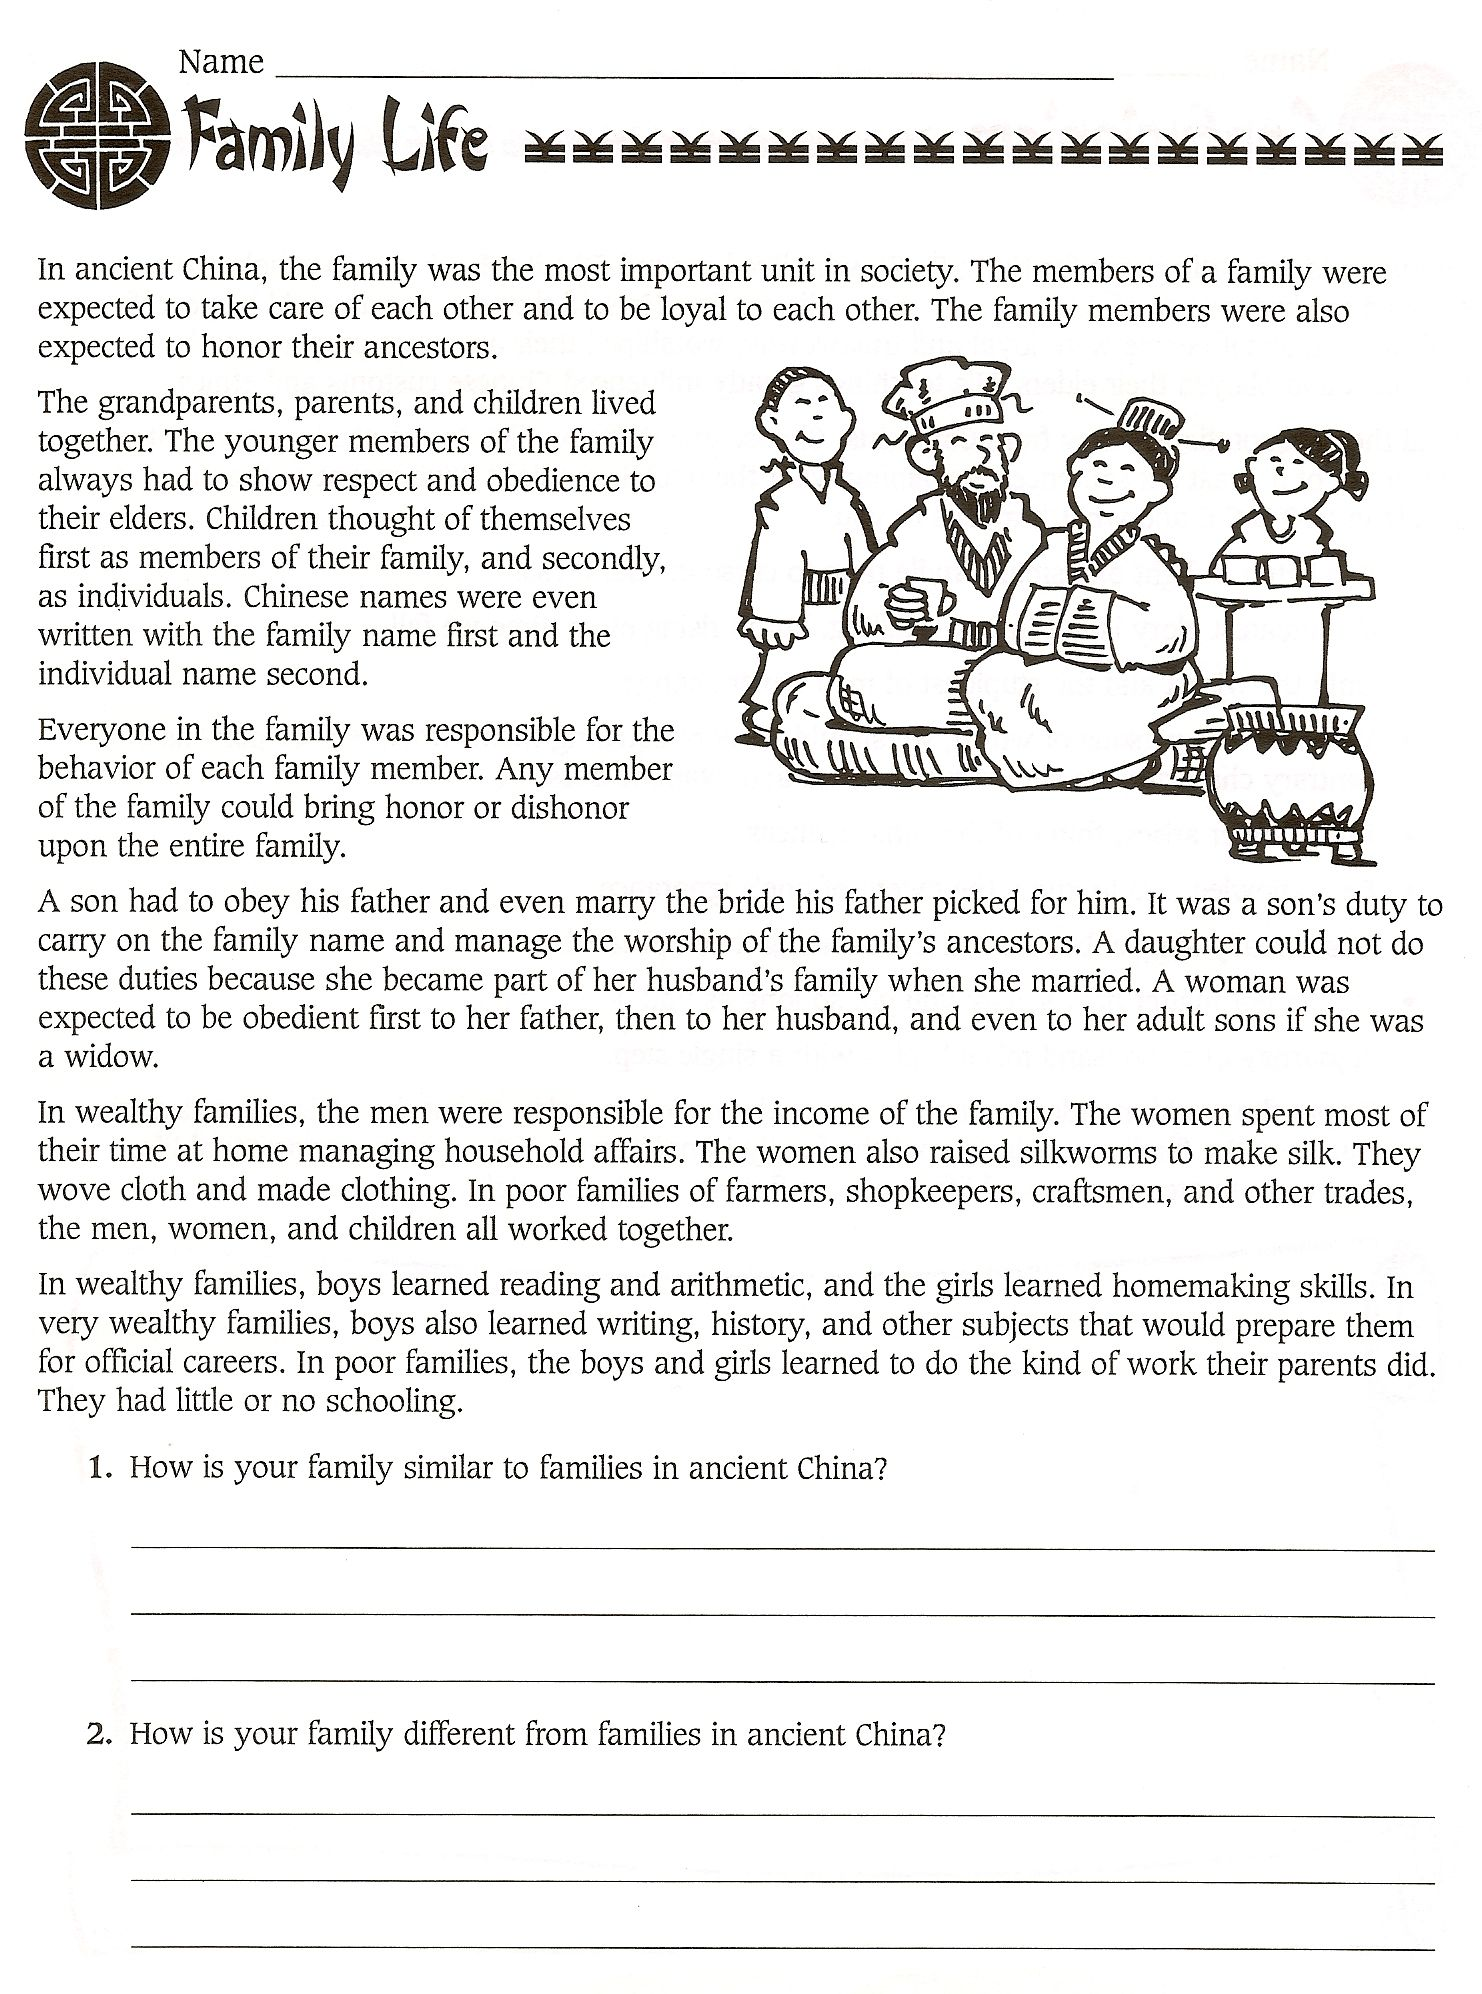 Worksheets Social Studies Worksheets For 4th Grade 6th grade social studies ancient china worksheets free free